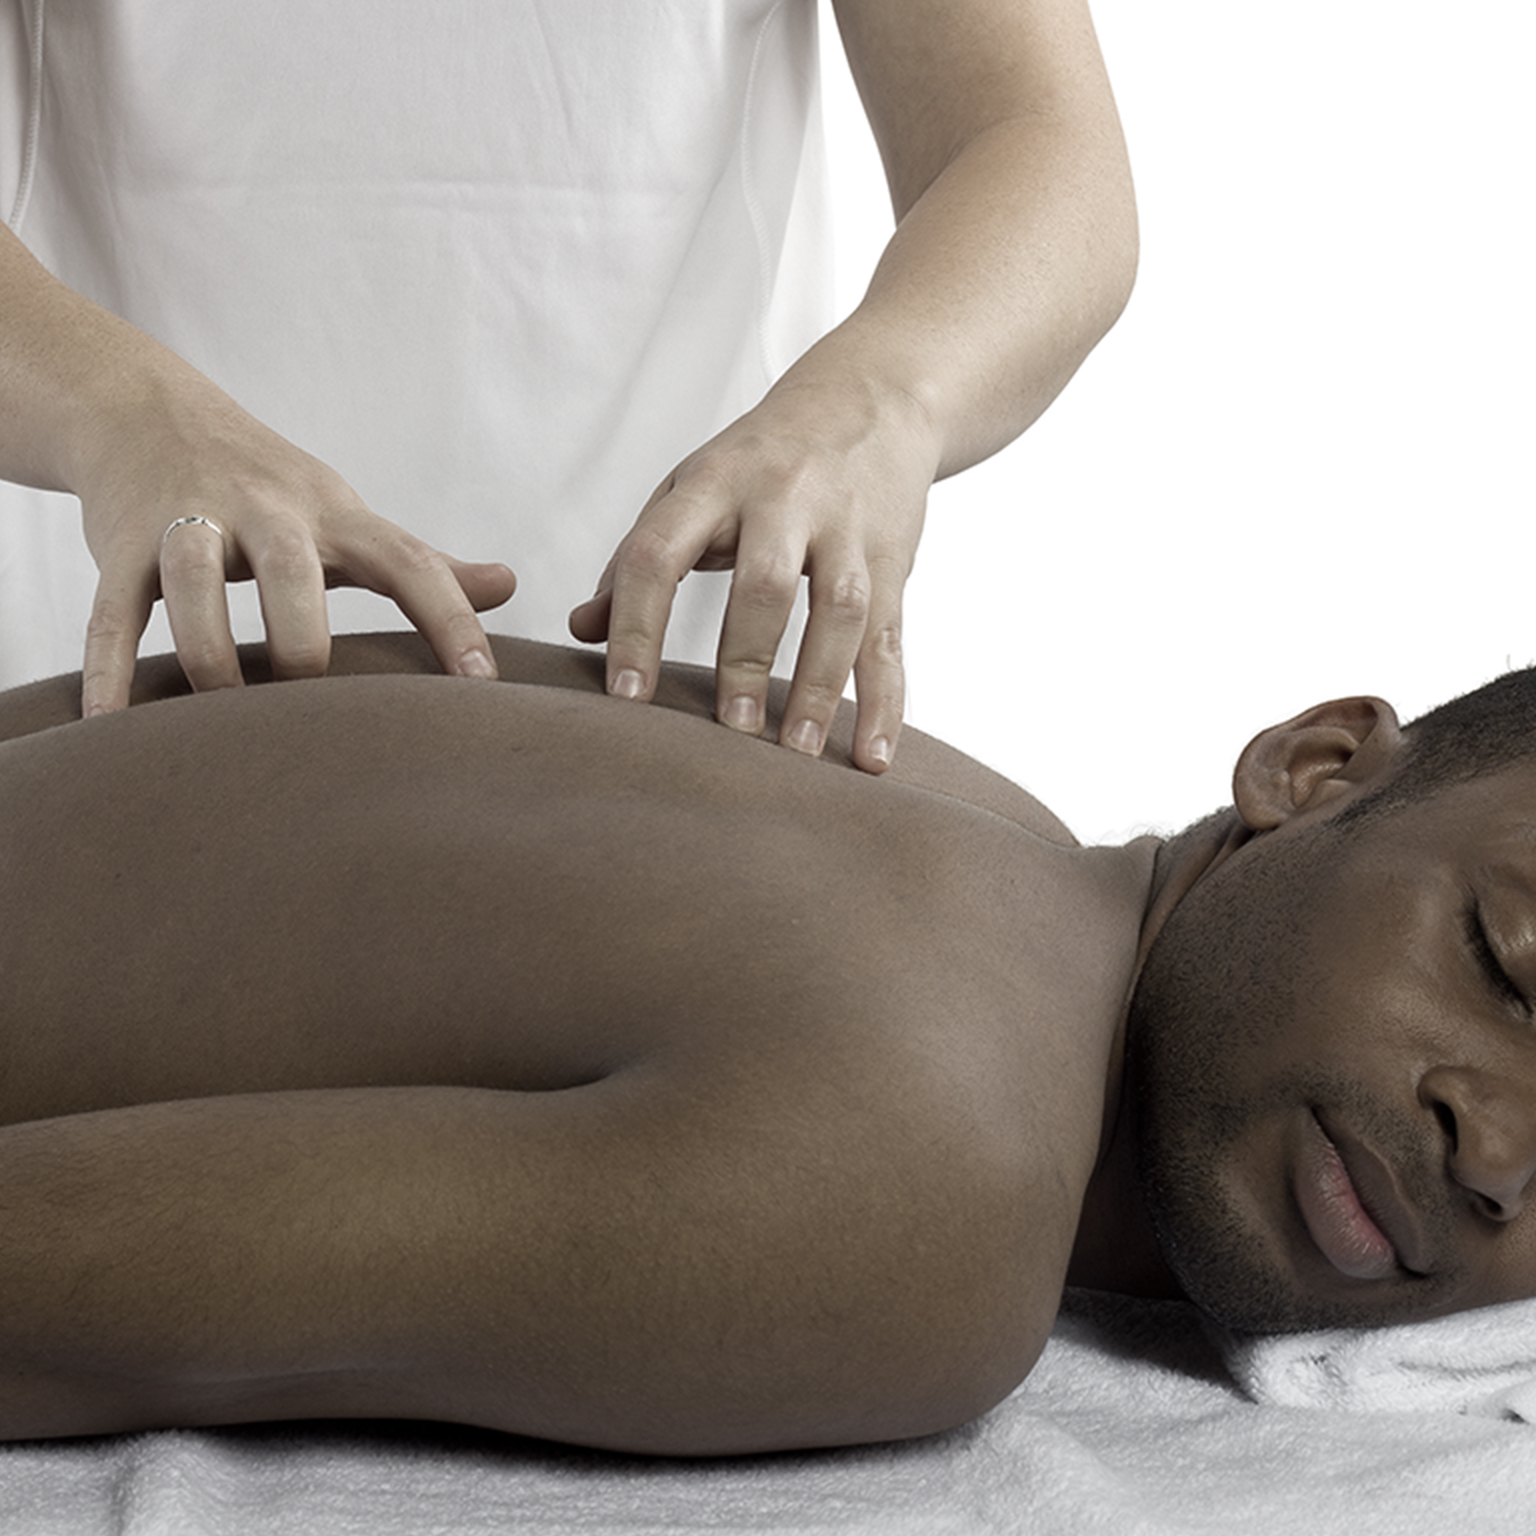 Our Chiropractic Doctors are your solution to reach 100% pain relief! Ashton Rehabilitation, pain relief & wellness has serviced patients in Silver, Spring, MD for over 23 years.